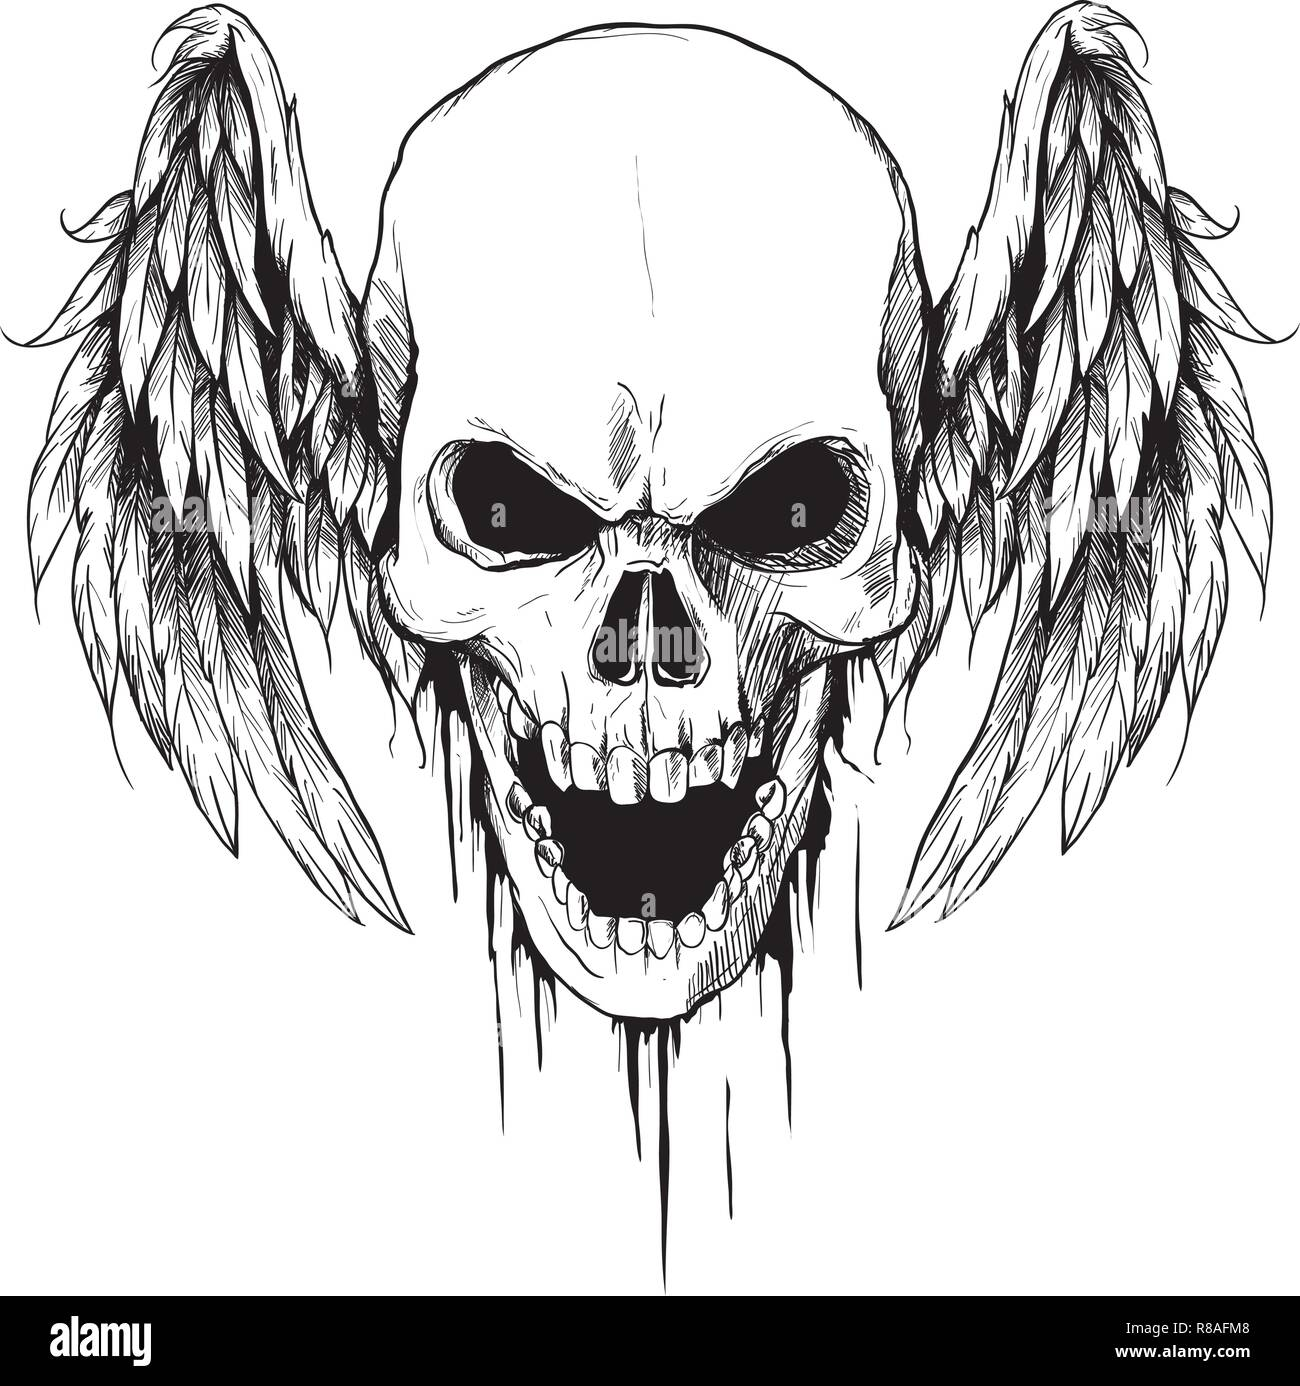 Draw Skull With Wings Vector Illustration Tattoo Style Stock Vector